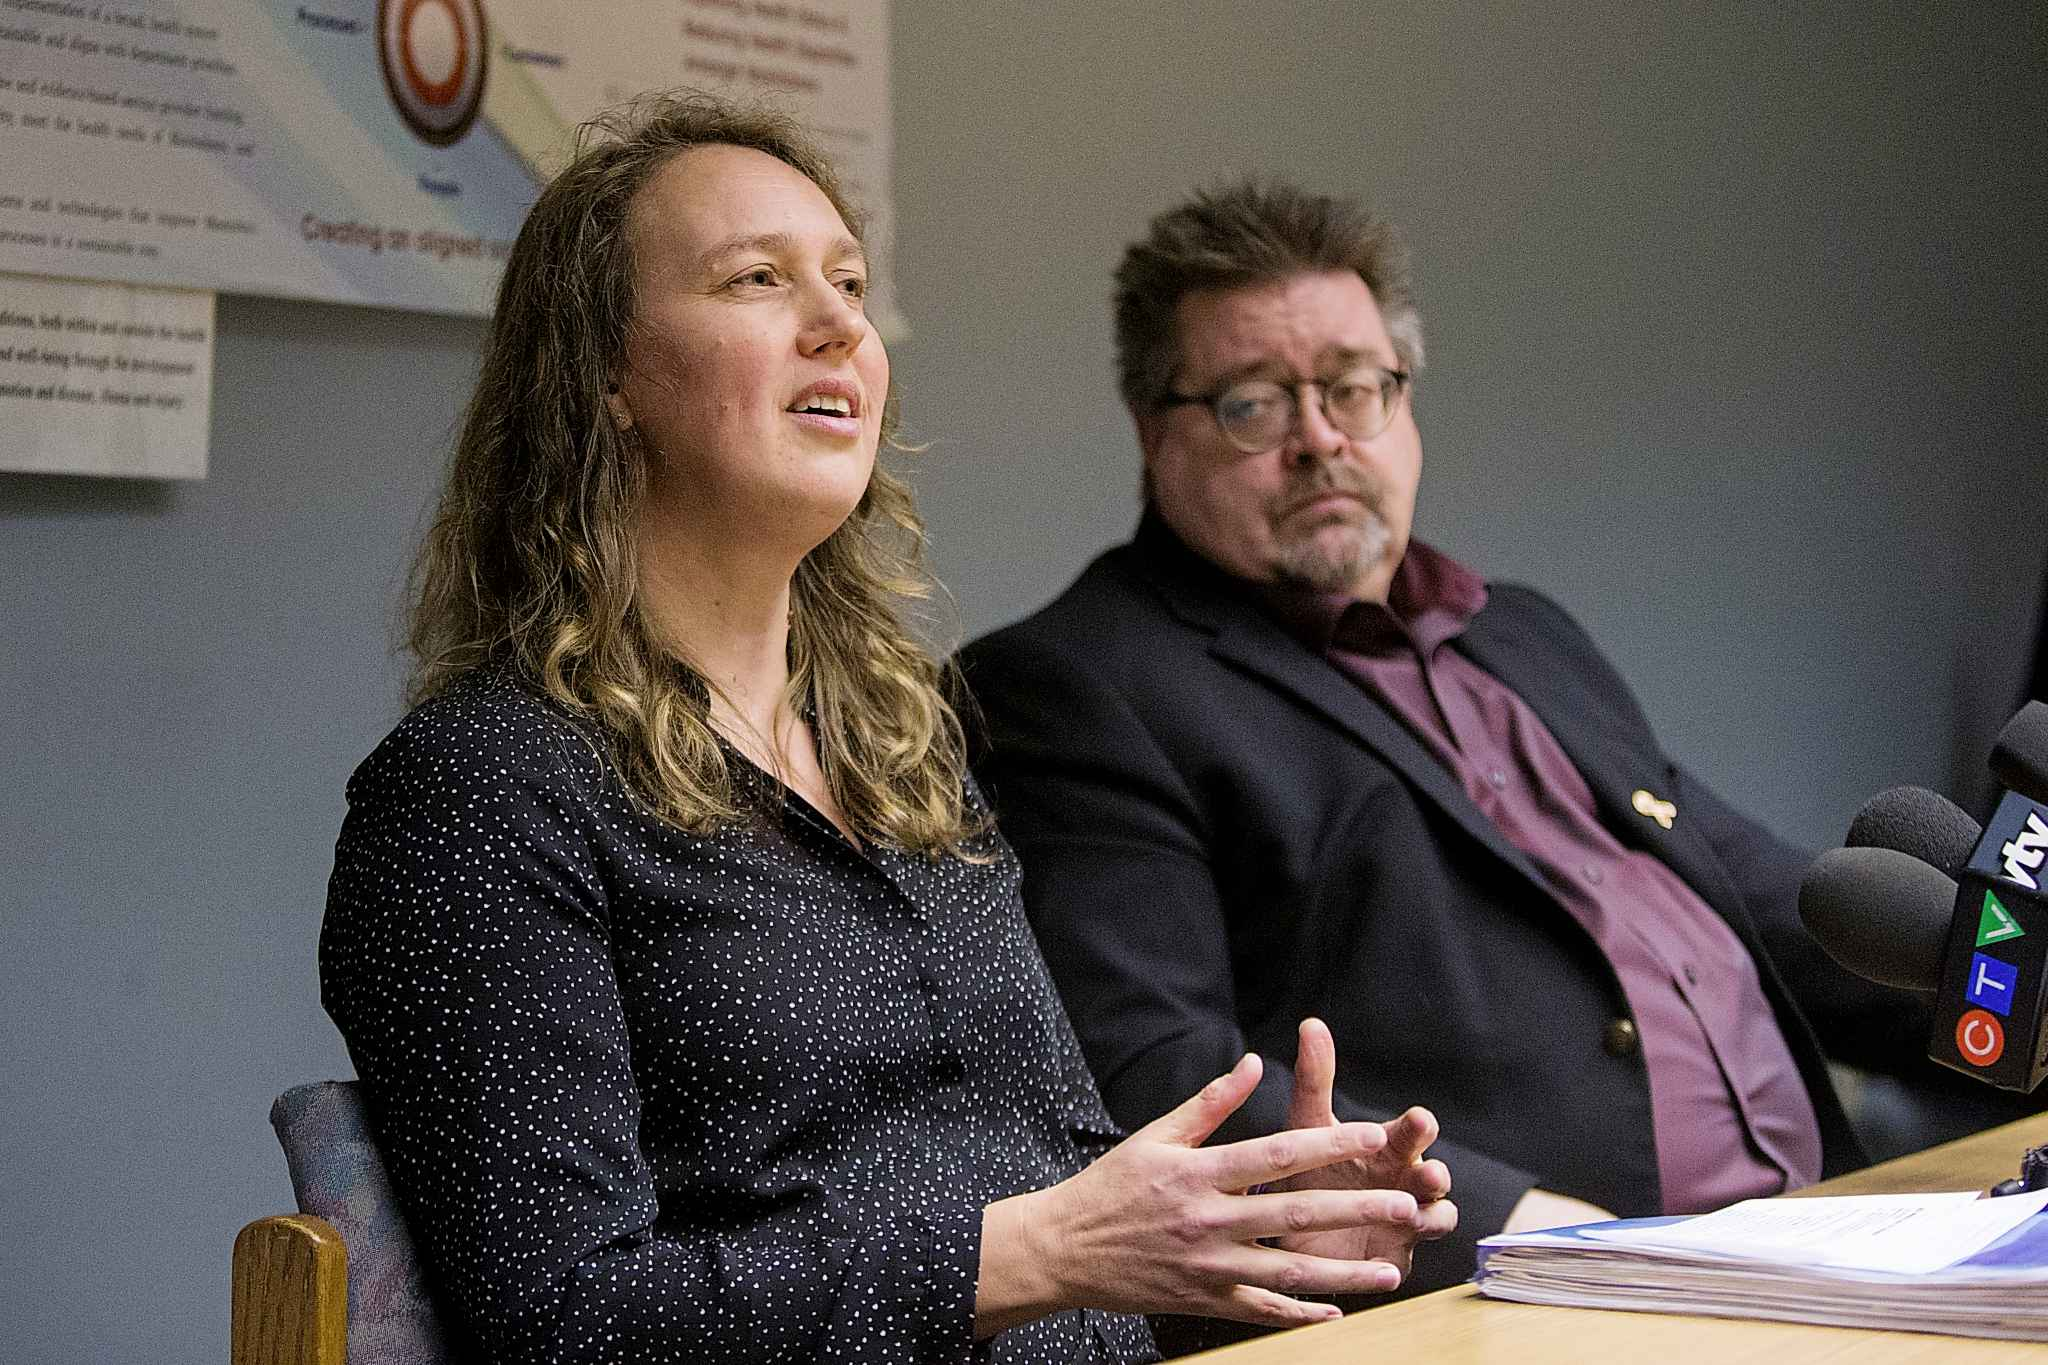 Lisa Richards, medical officer of health in Winnipeg (left), and Don Labossiere, director of environmental compliance and enforcement at Manitoba Sustainable Development, talk about soil contamination in Winnipeg.